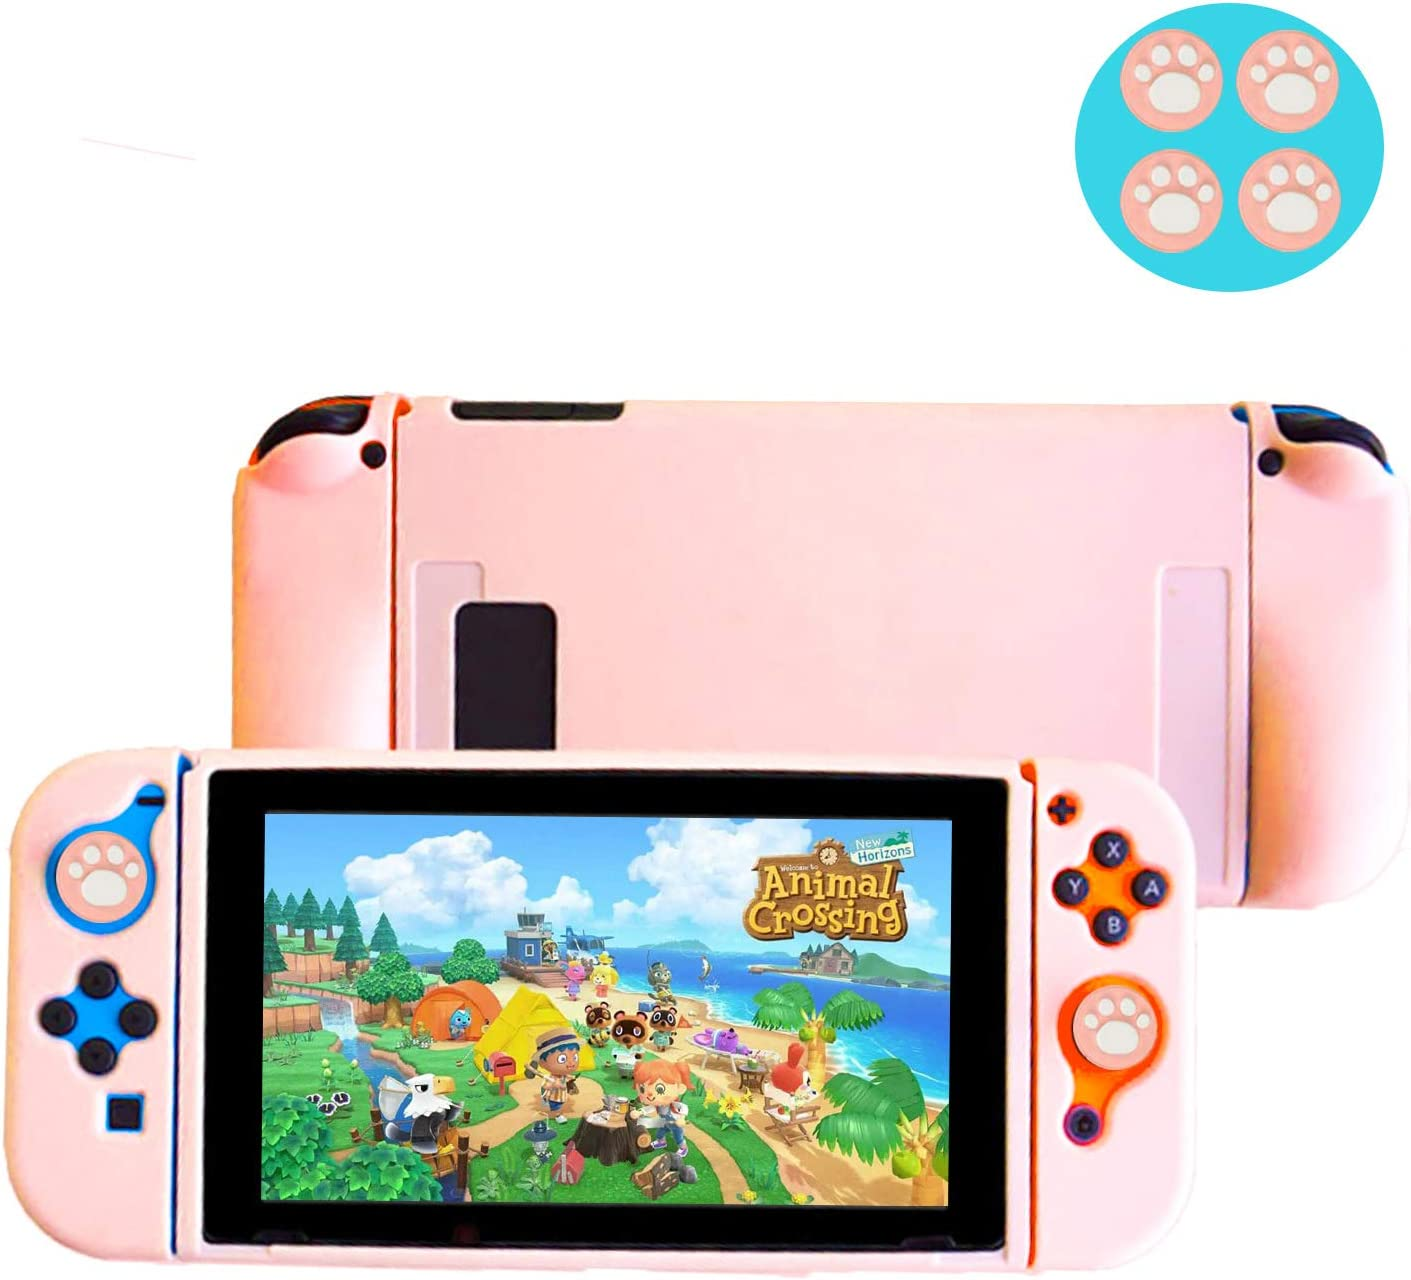 Falamiao Dockable Case for Nintendo Switch, Protective Case Cover with Soft Touch Grip Back Cover Case, NS Joy-Con Controller Housing, with Free 4 Grip Caps (Sakura Pink)